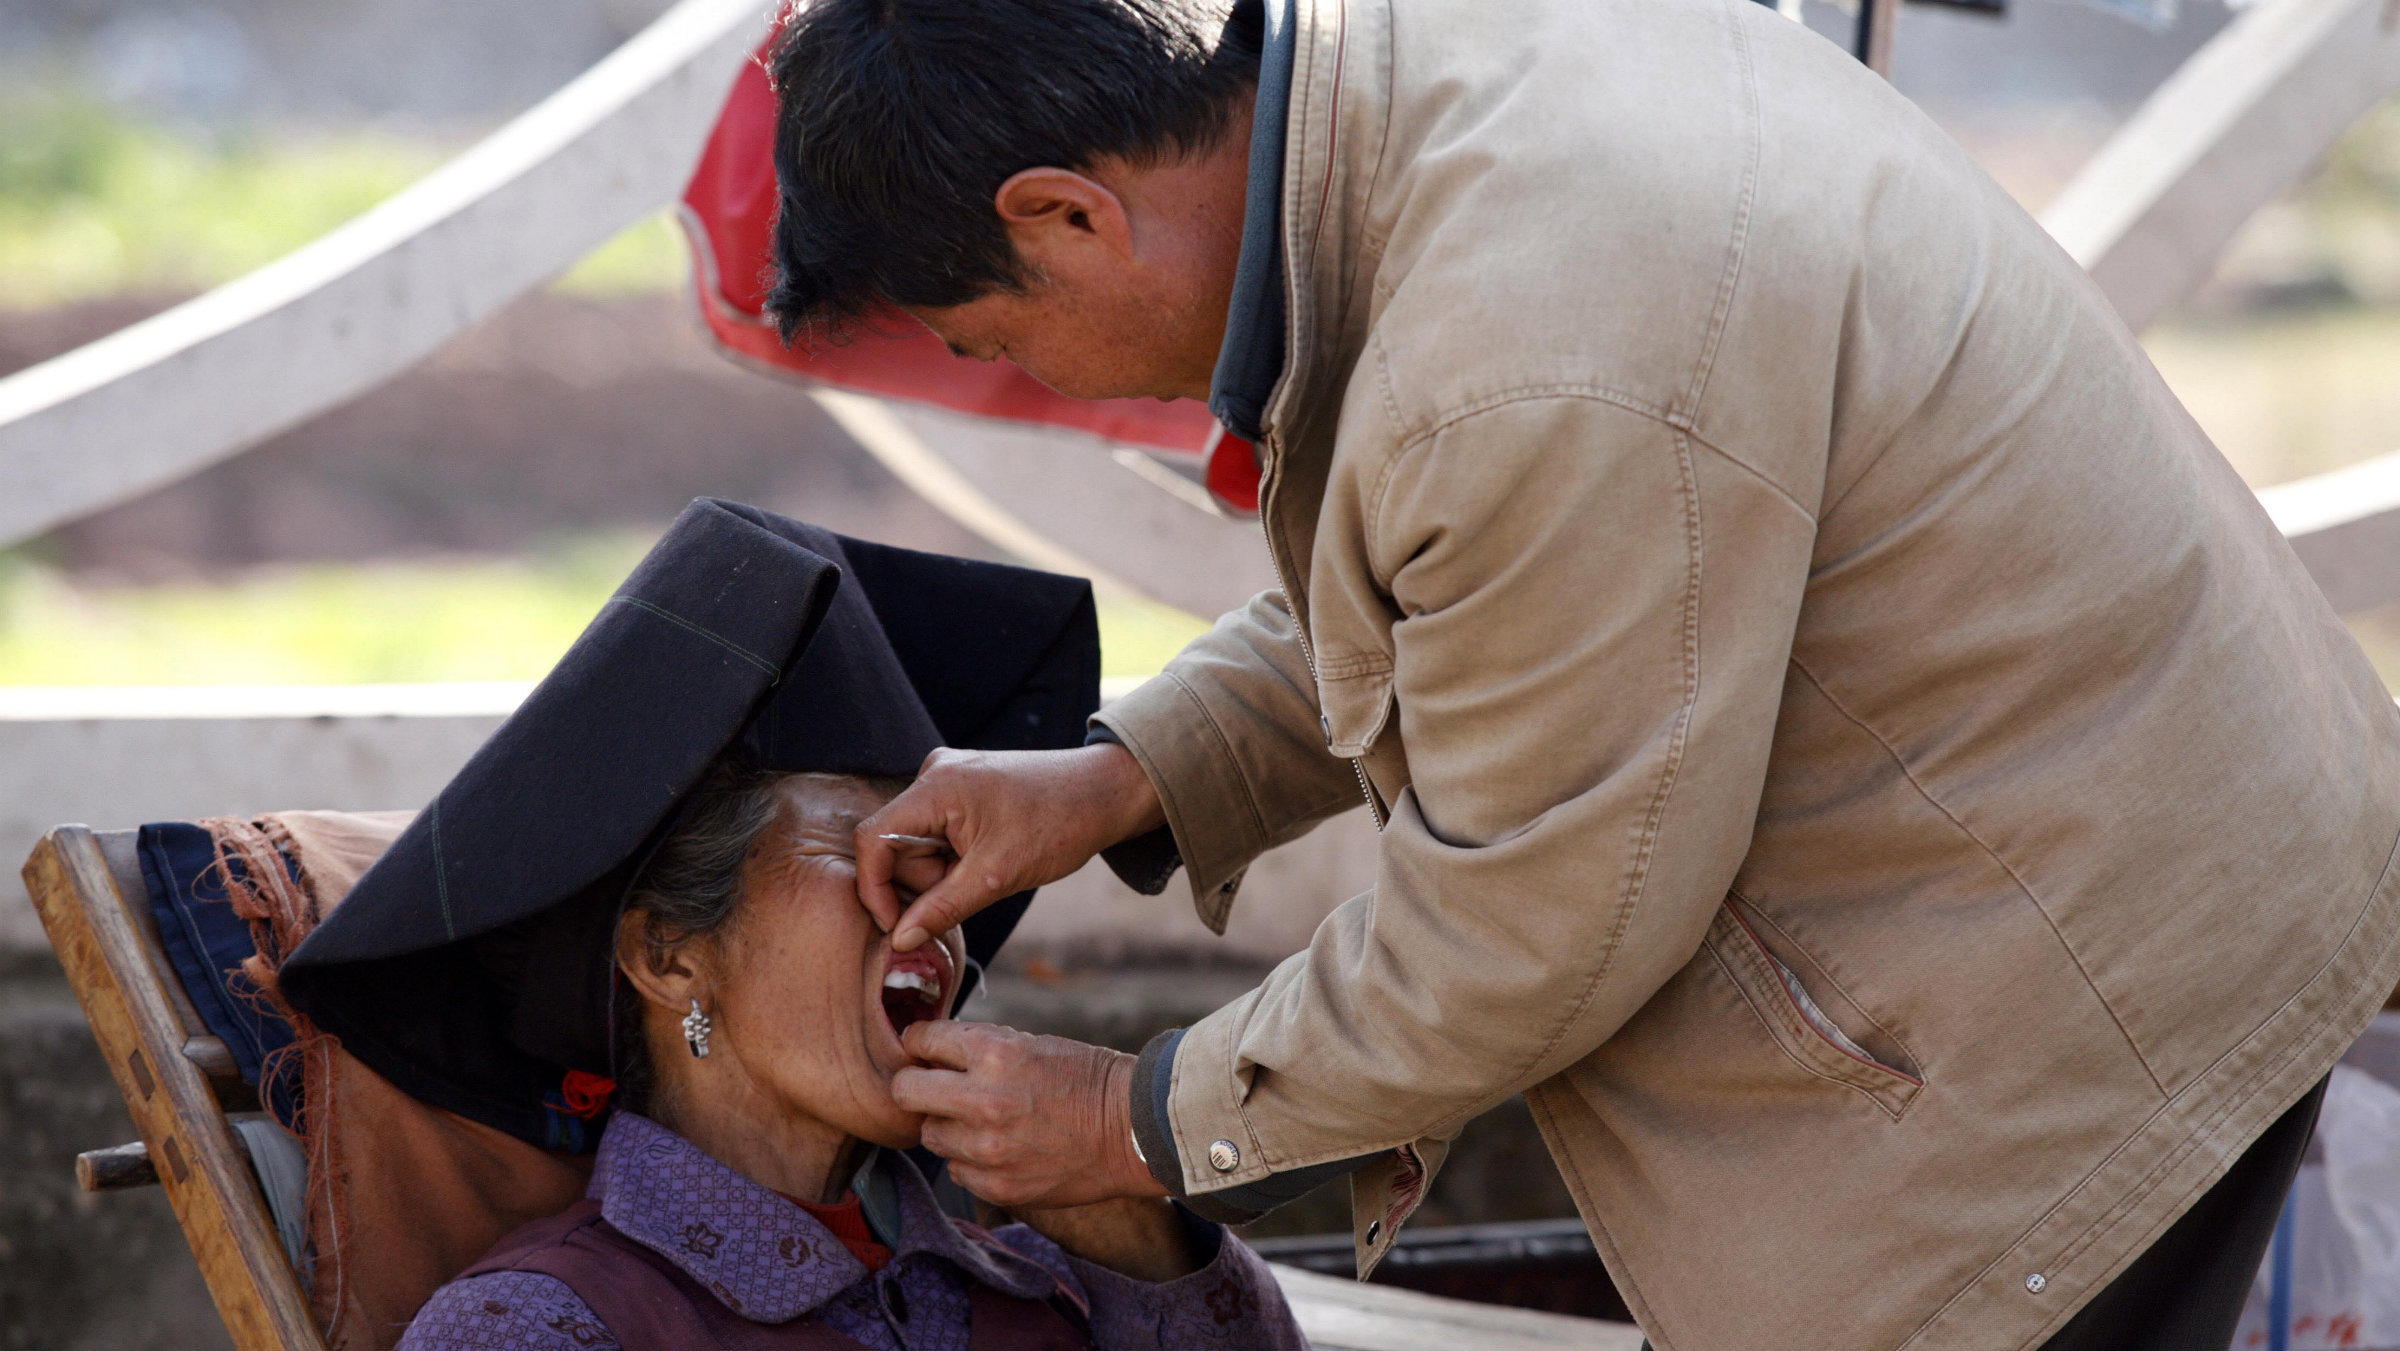 A dentist checks the teeth of a patient in a street market in Xichang, southwest China's Sichuan province.